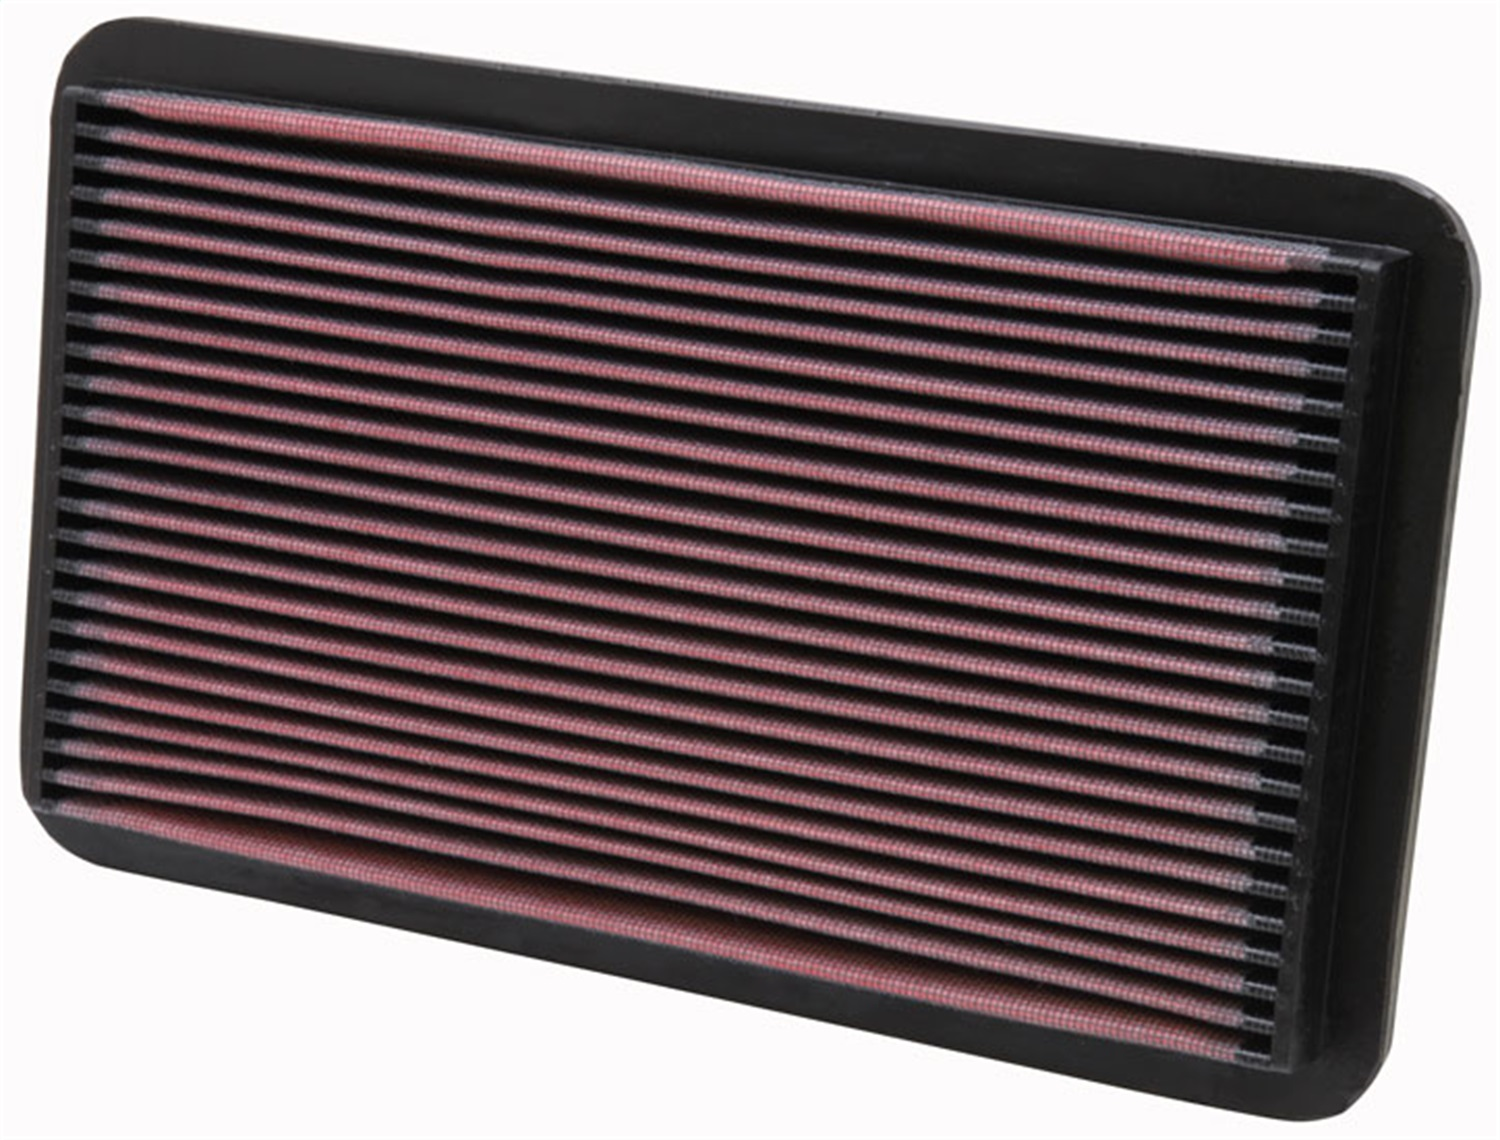 K&N Filters 33-2052 Air Filter Fits 92-99 Avalon Camry Celica ES300 33-2052